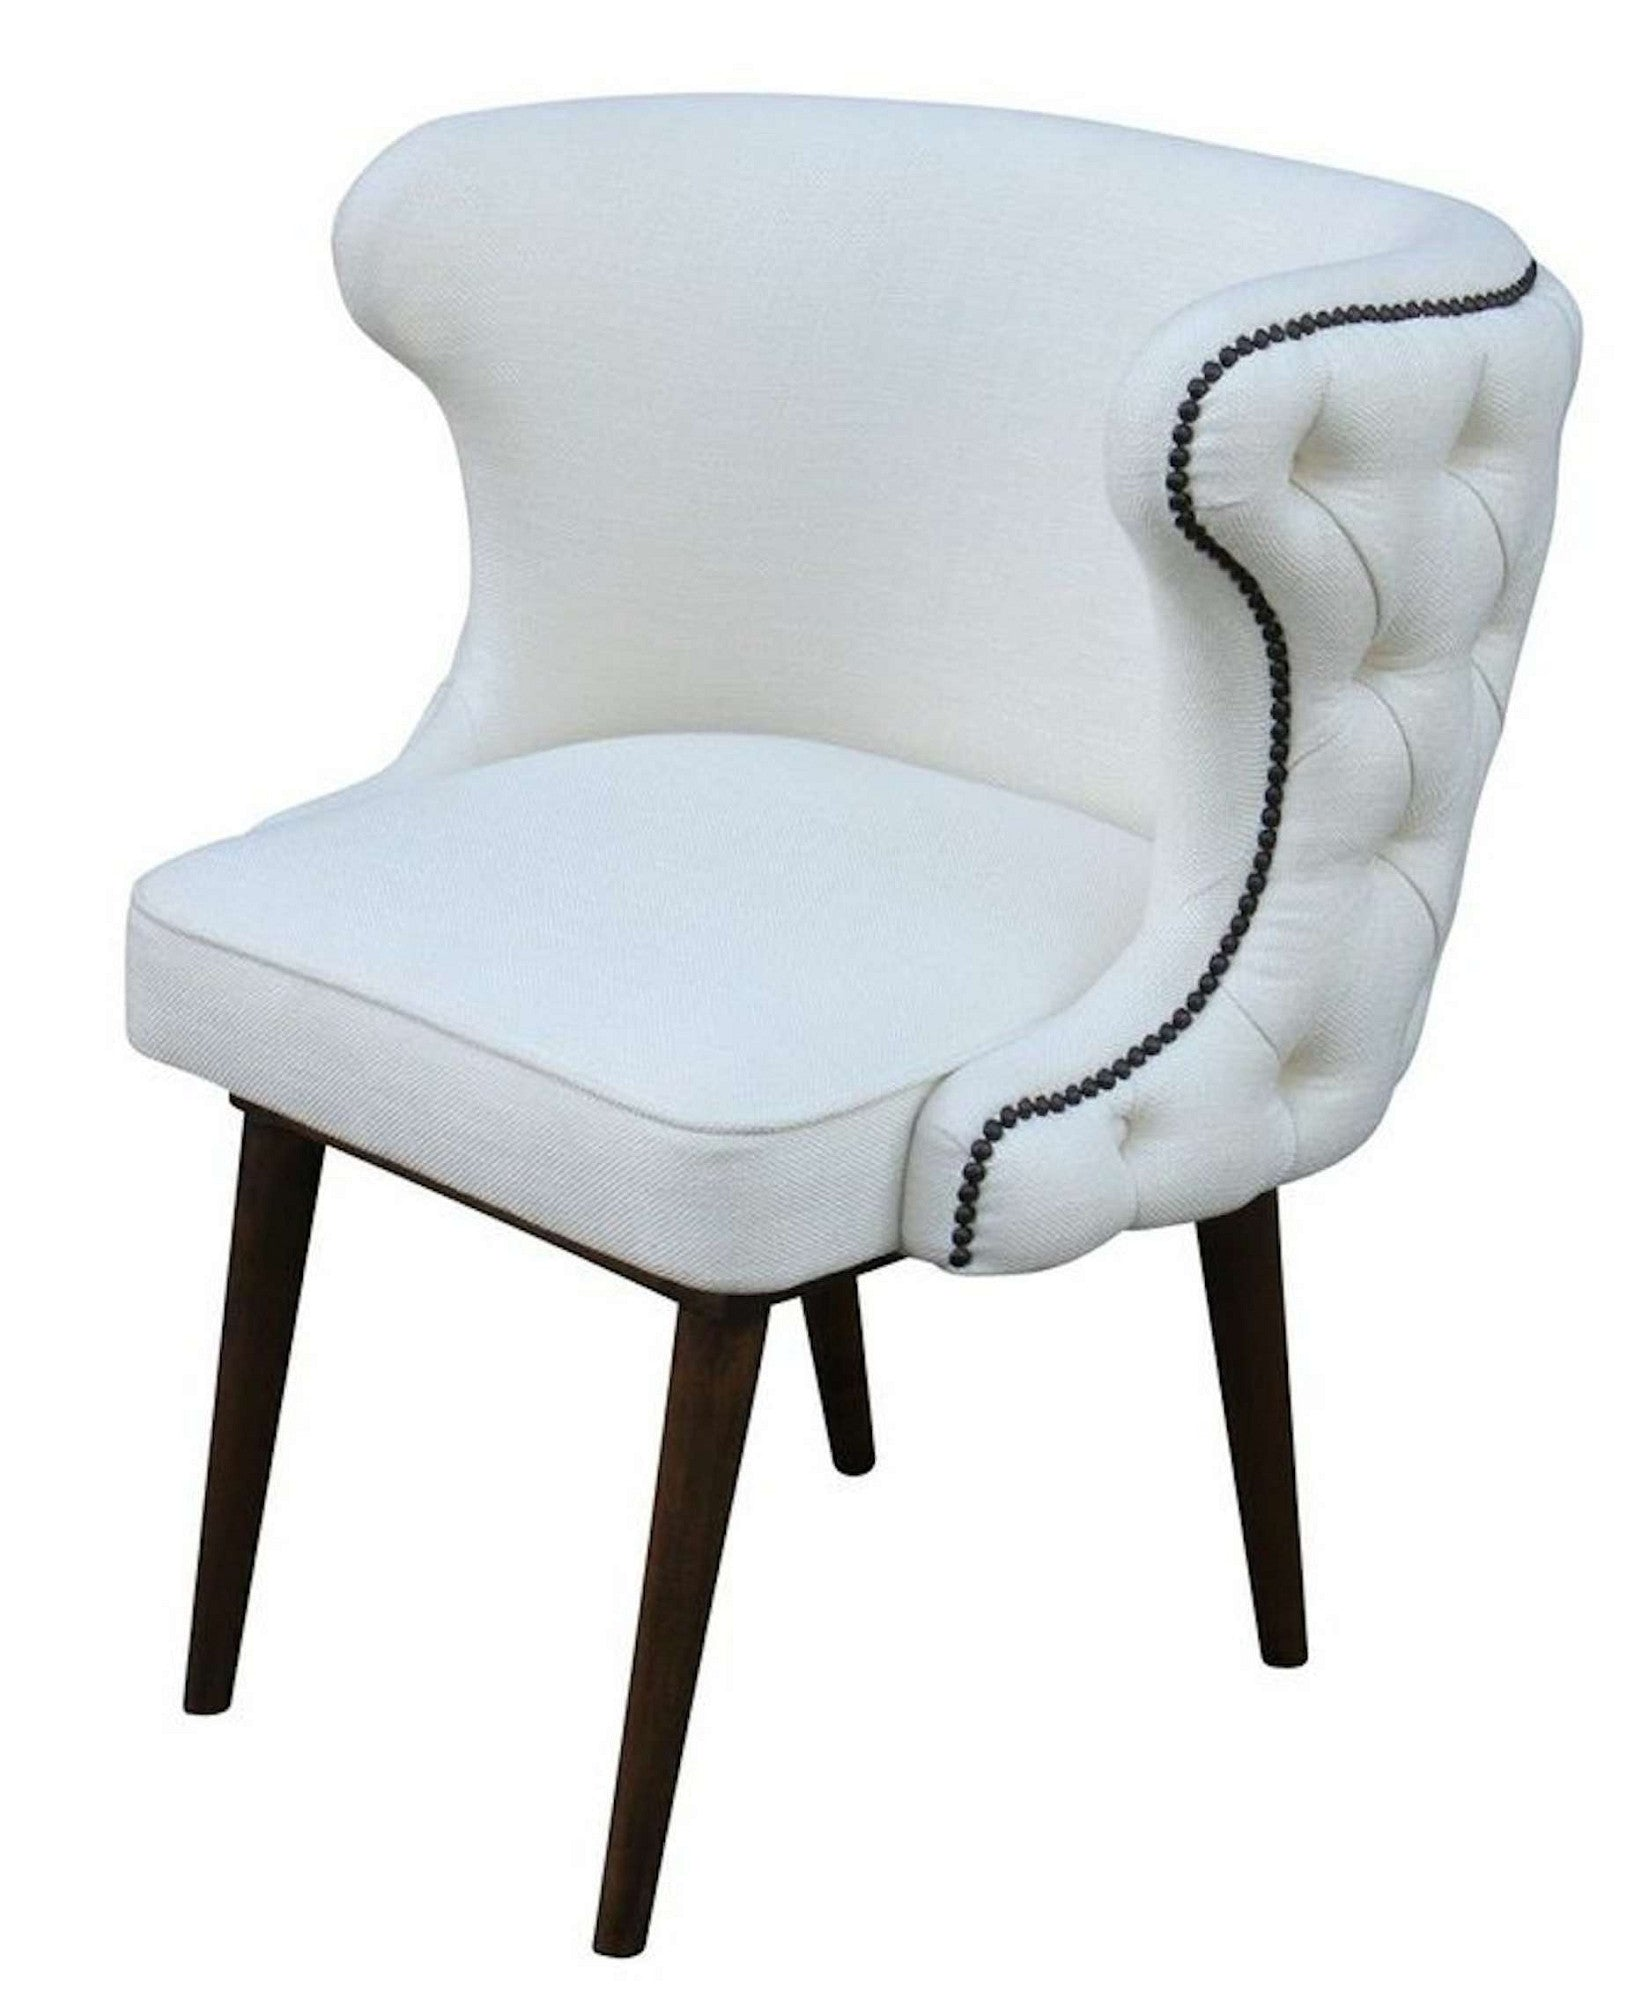 Upholster Dining Room Chairs: Mortise & Tenon